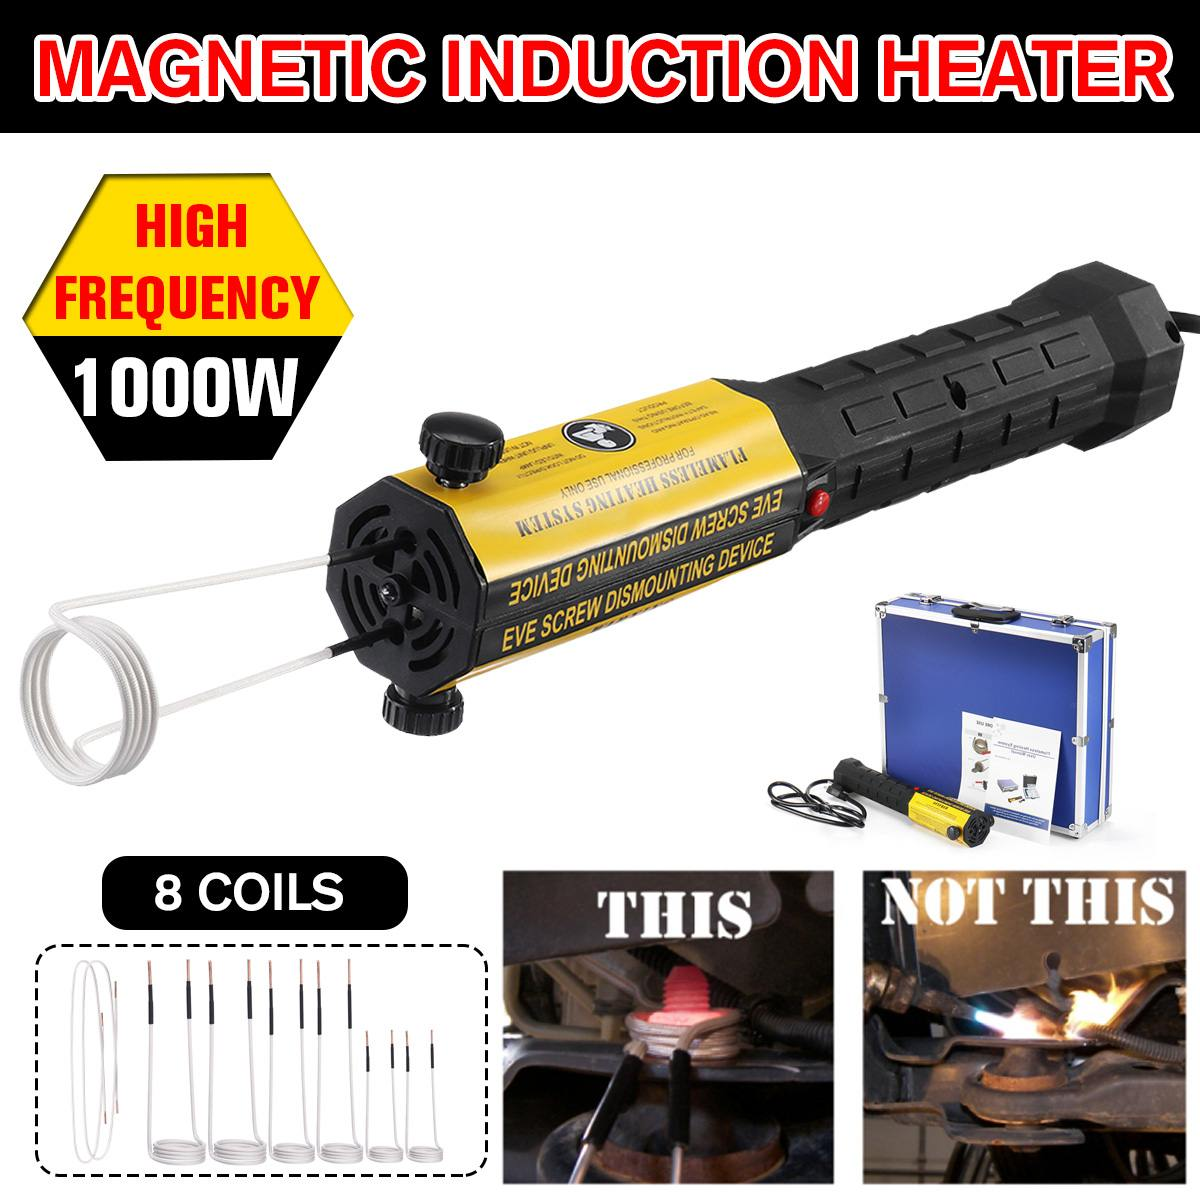 1000W 110V US Ductor Magnetic Induction Heater Automotive Flameless Heat Remover